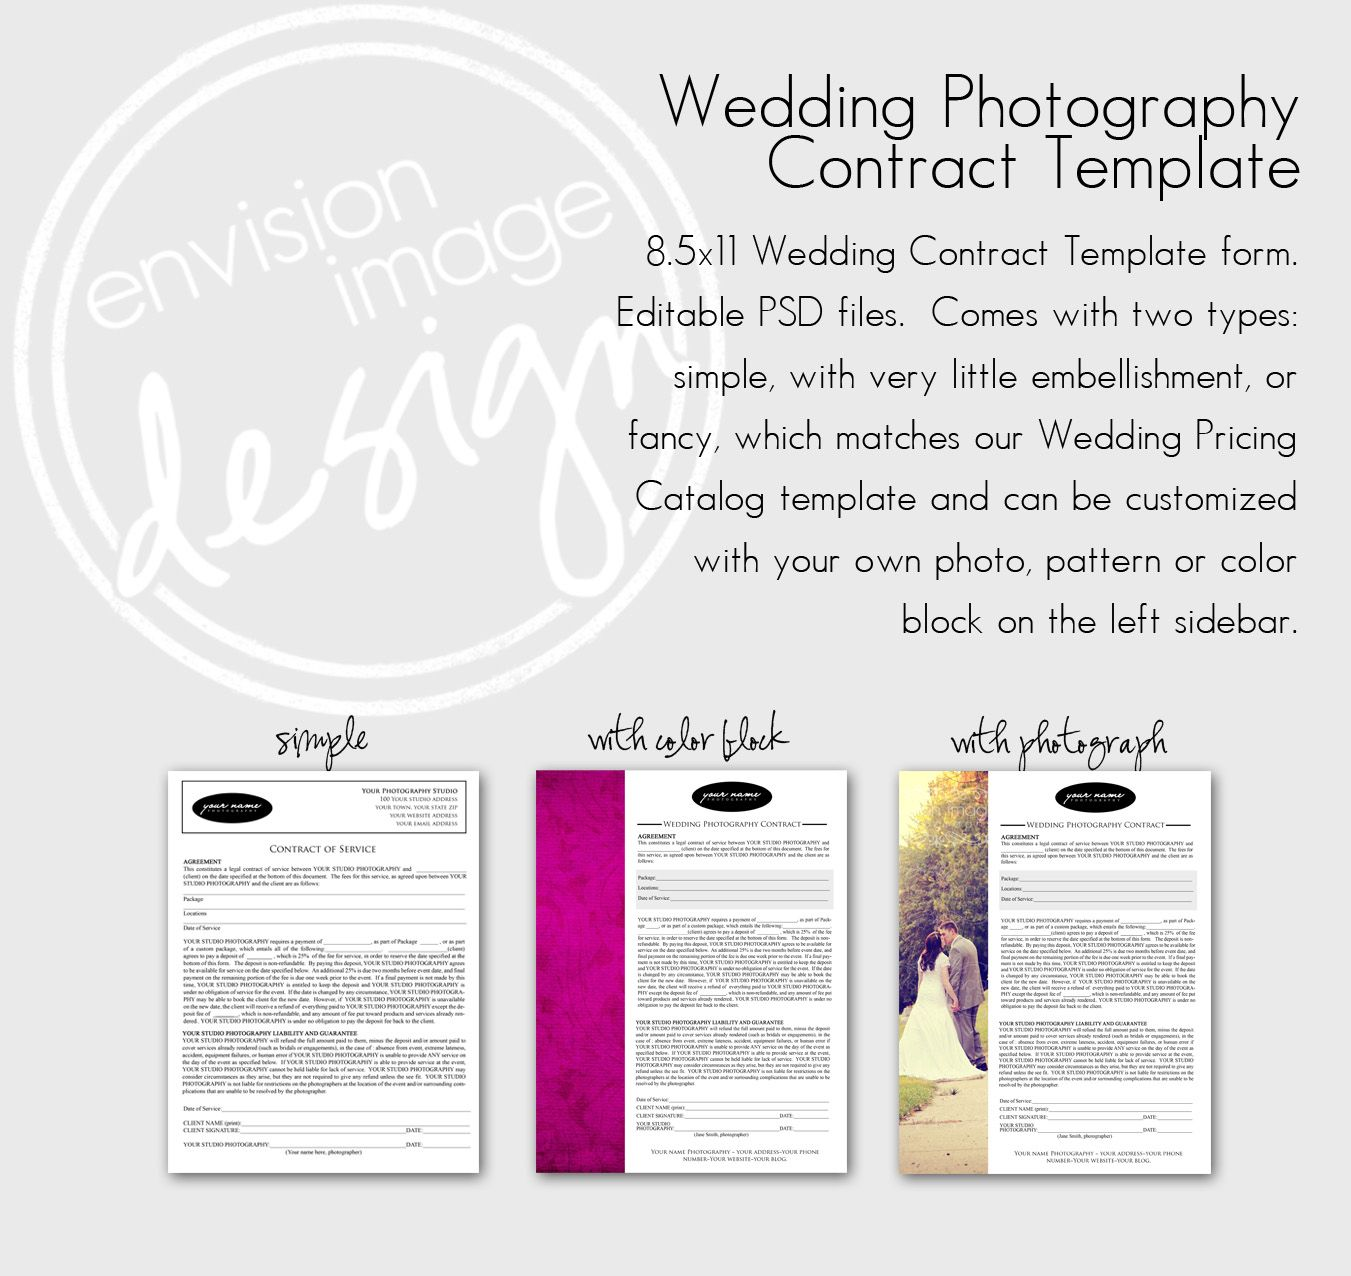 Non Compete Agreement Photography Contract Template  Wedding